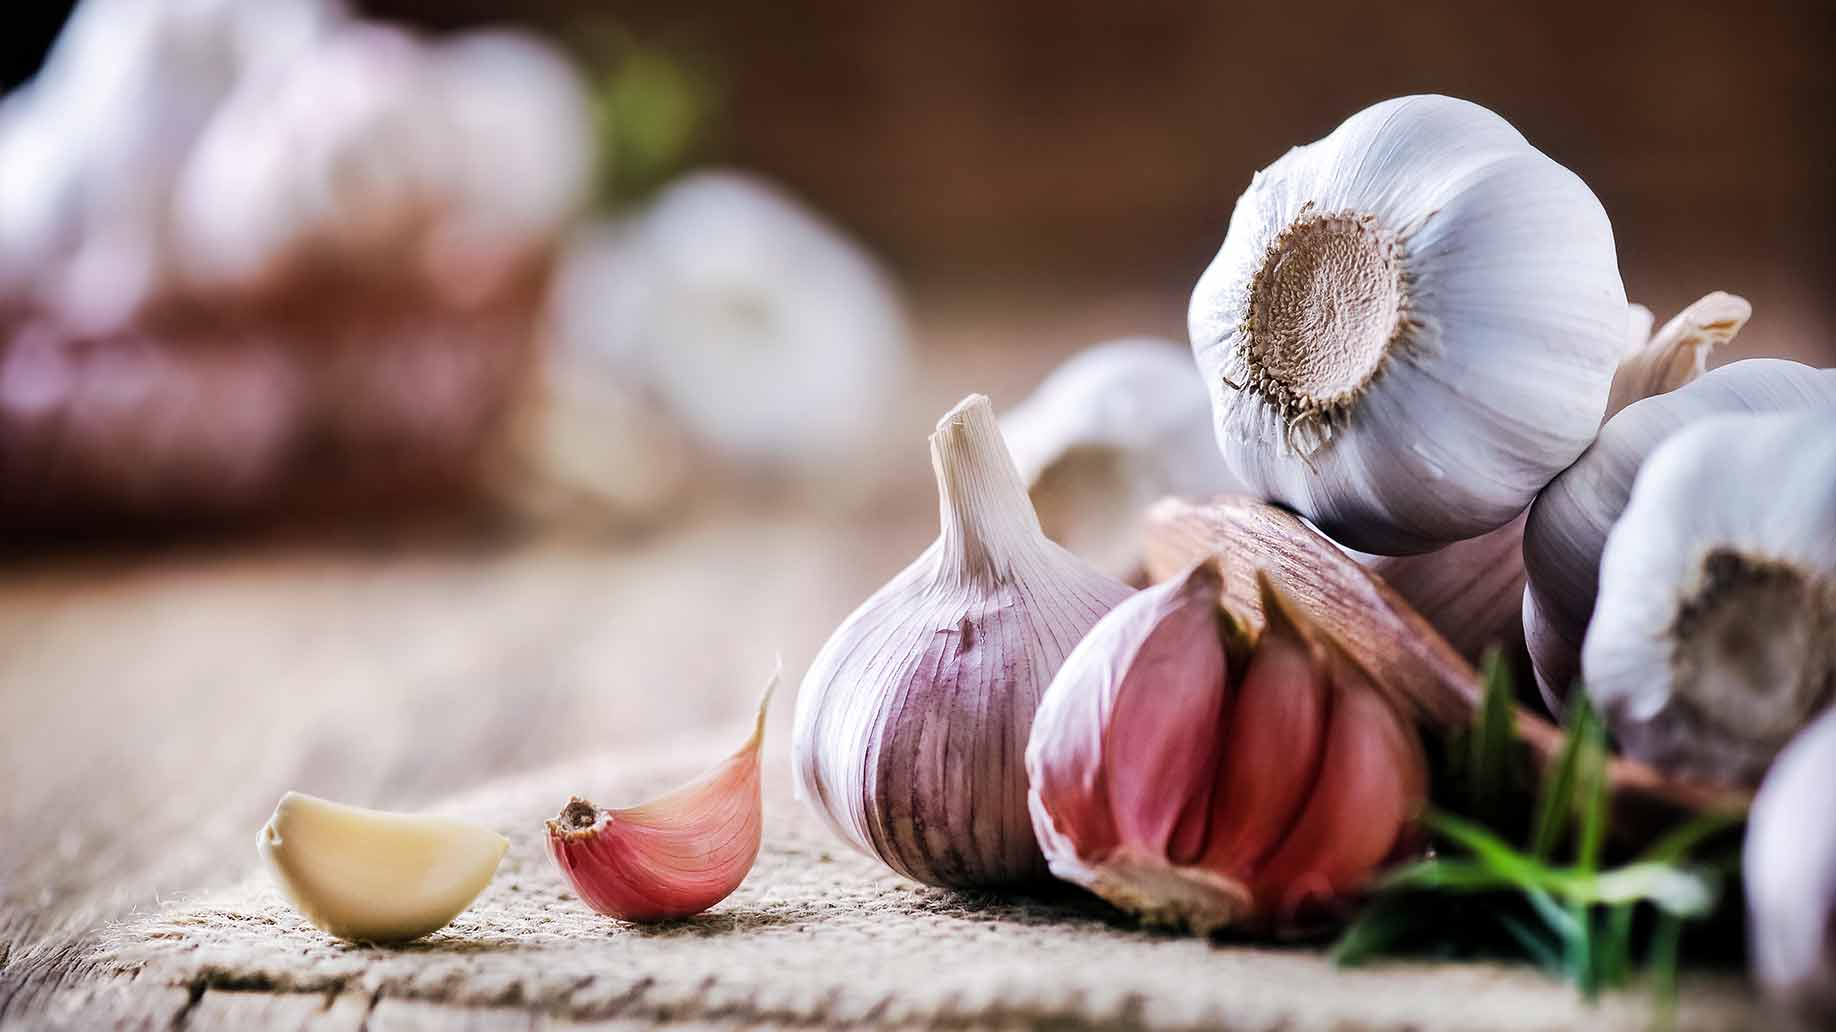 high cholesterol garlic cloves heart health natural remedies